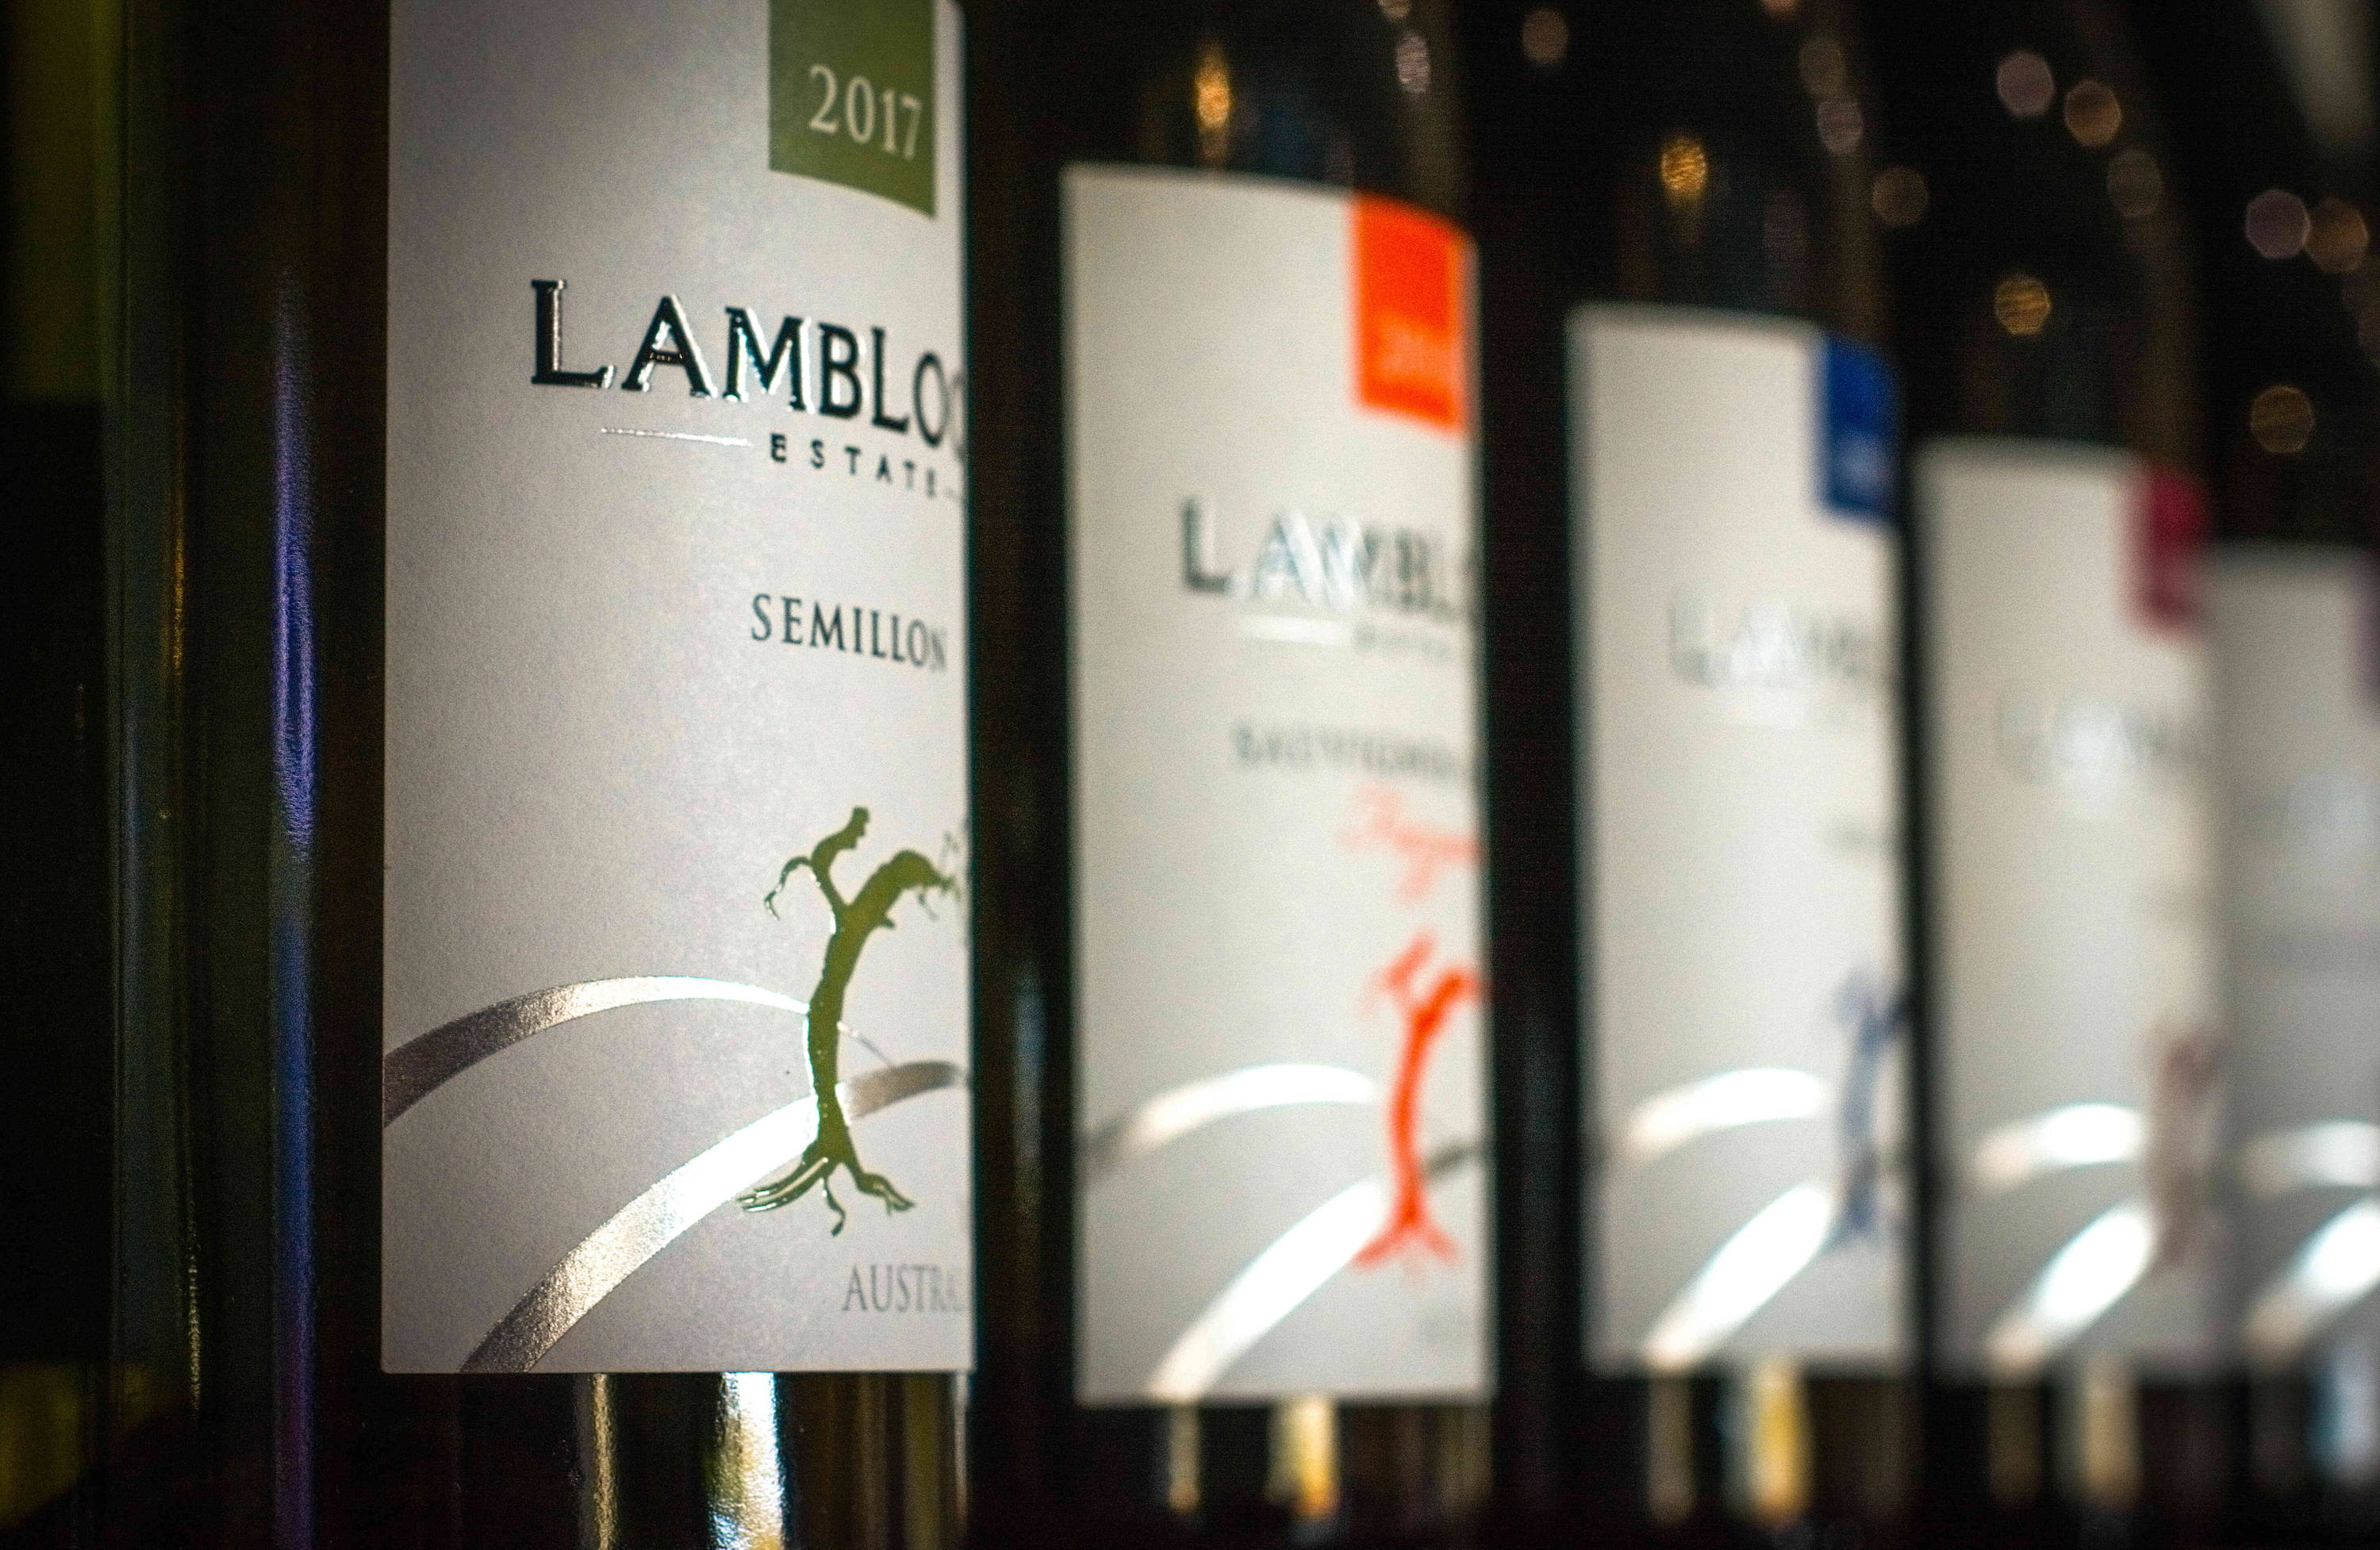 Selection of wines at Hunter Valley Vineyard Lambloch Estate